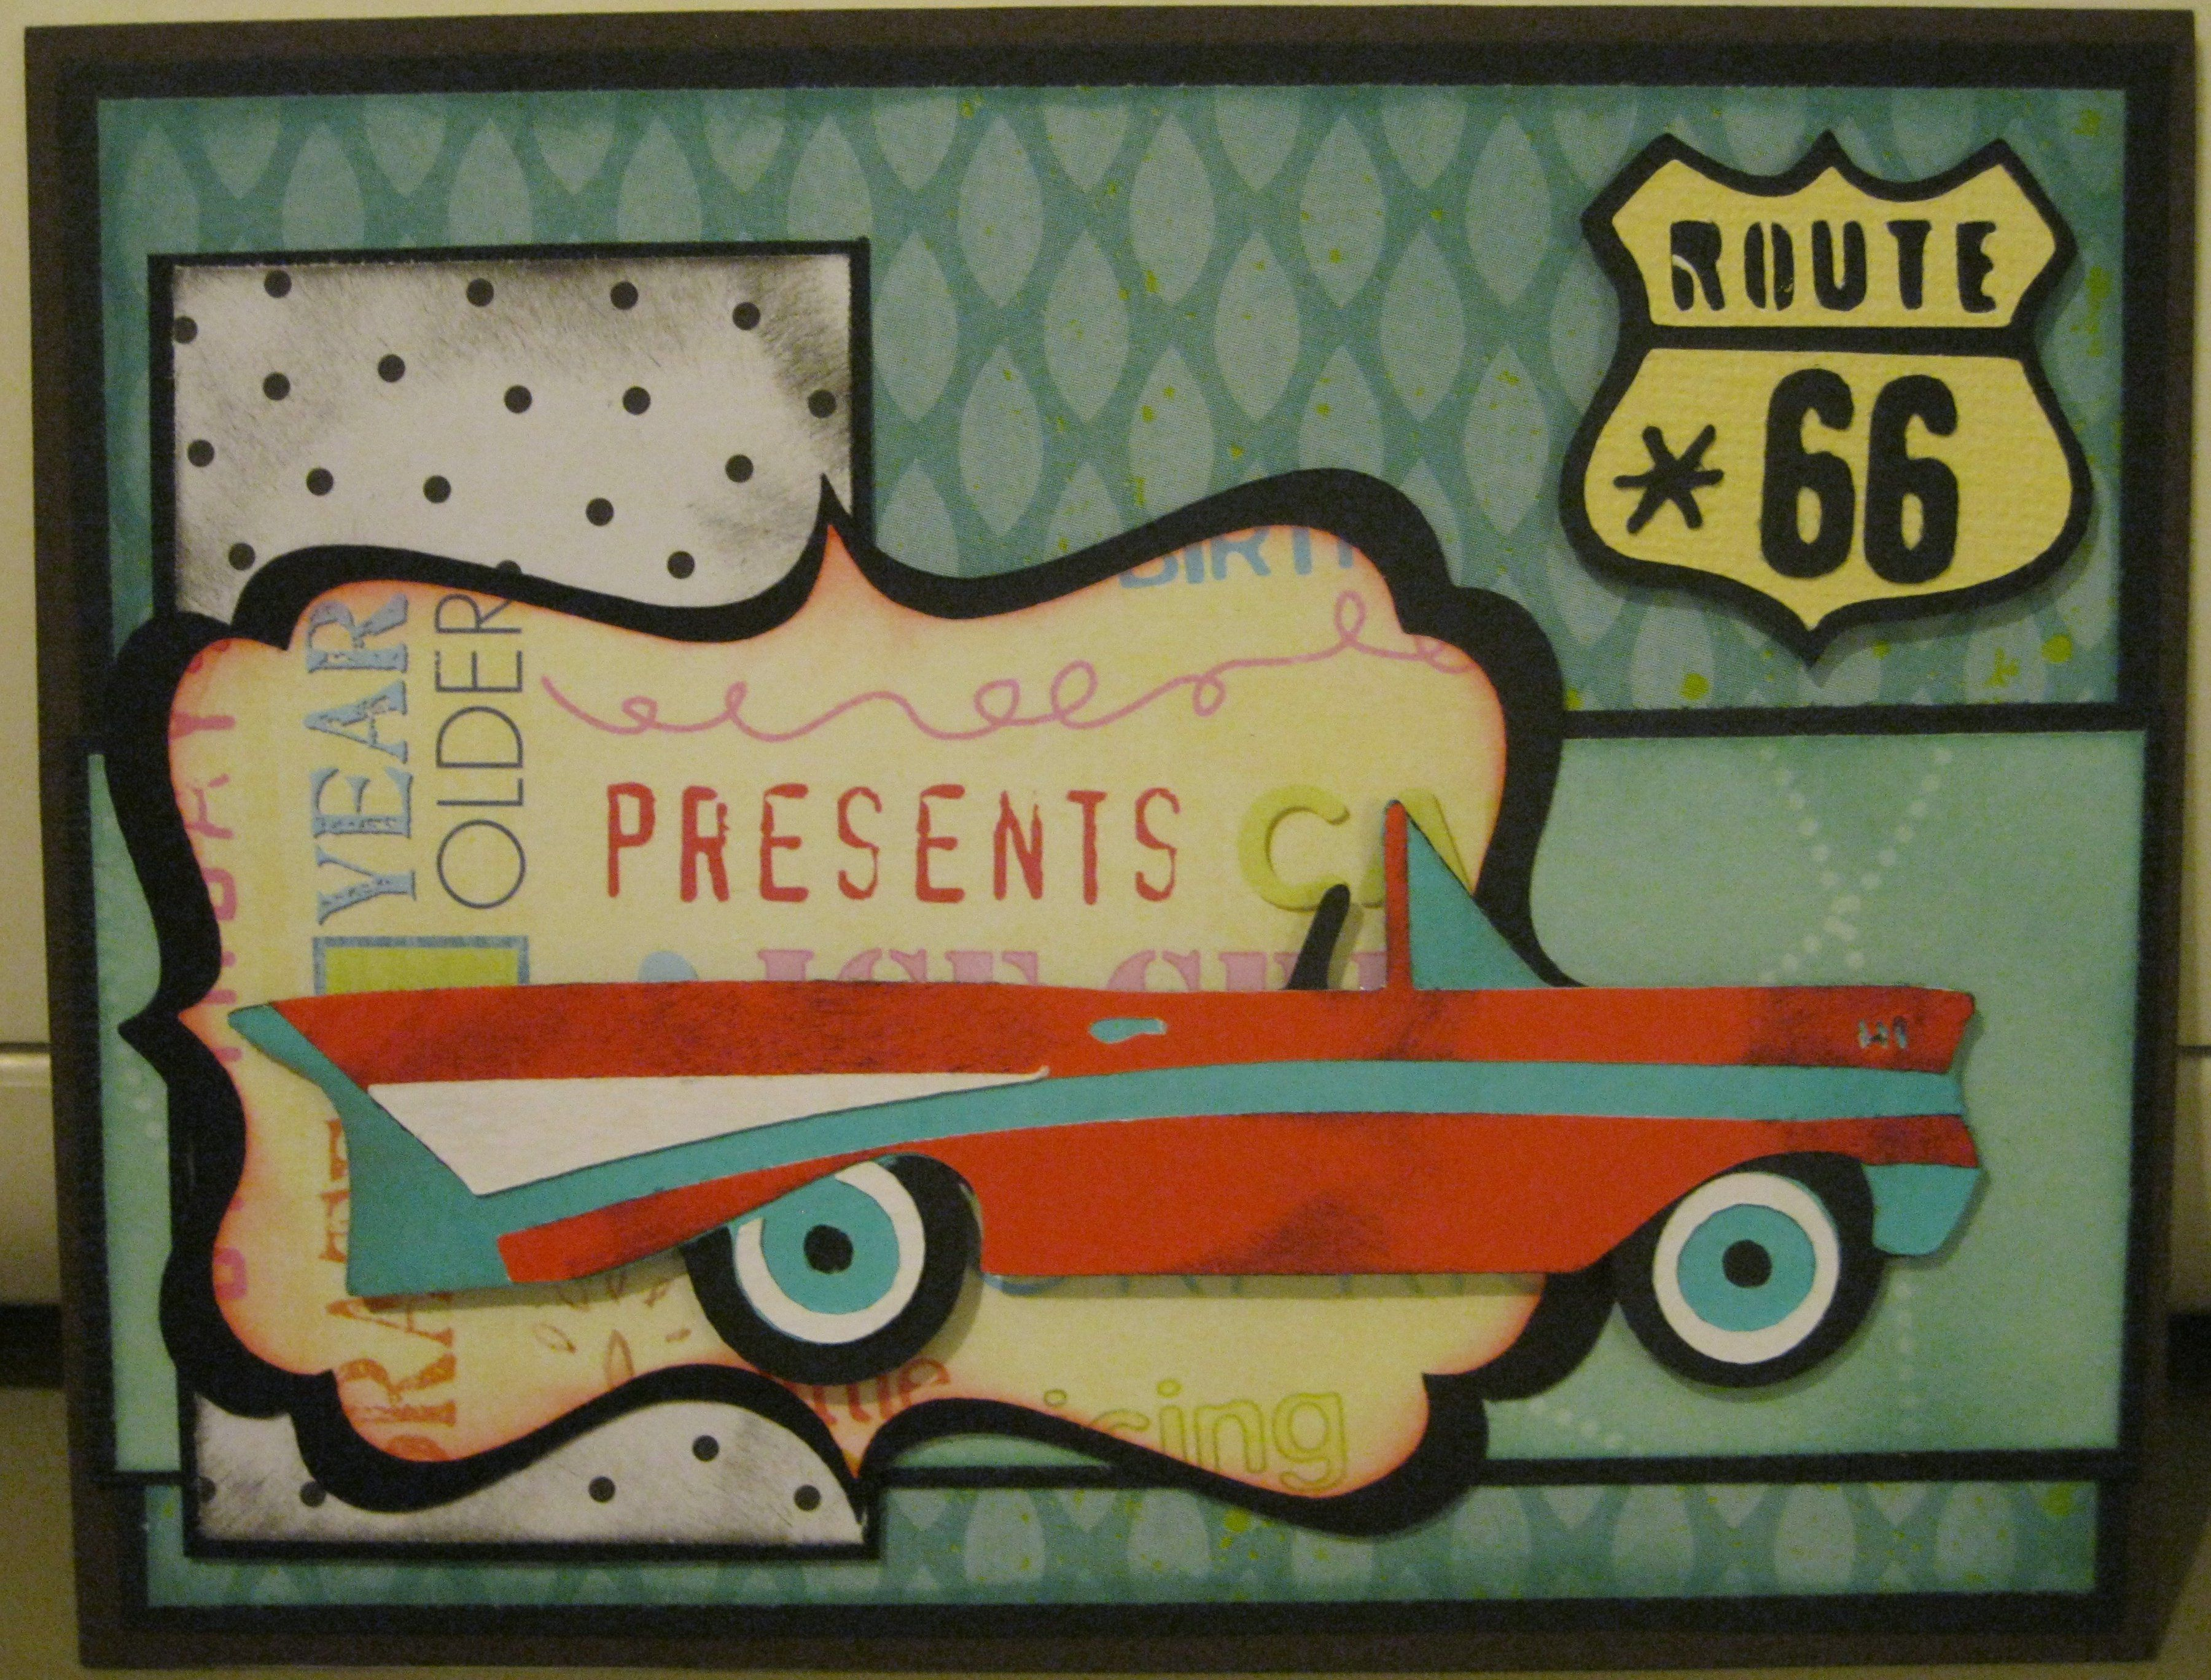 Birthday Cards Brother In Law ~ Manly birthday card route 66 scrapbook.com cards and such